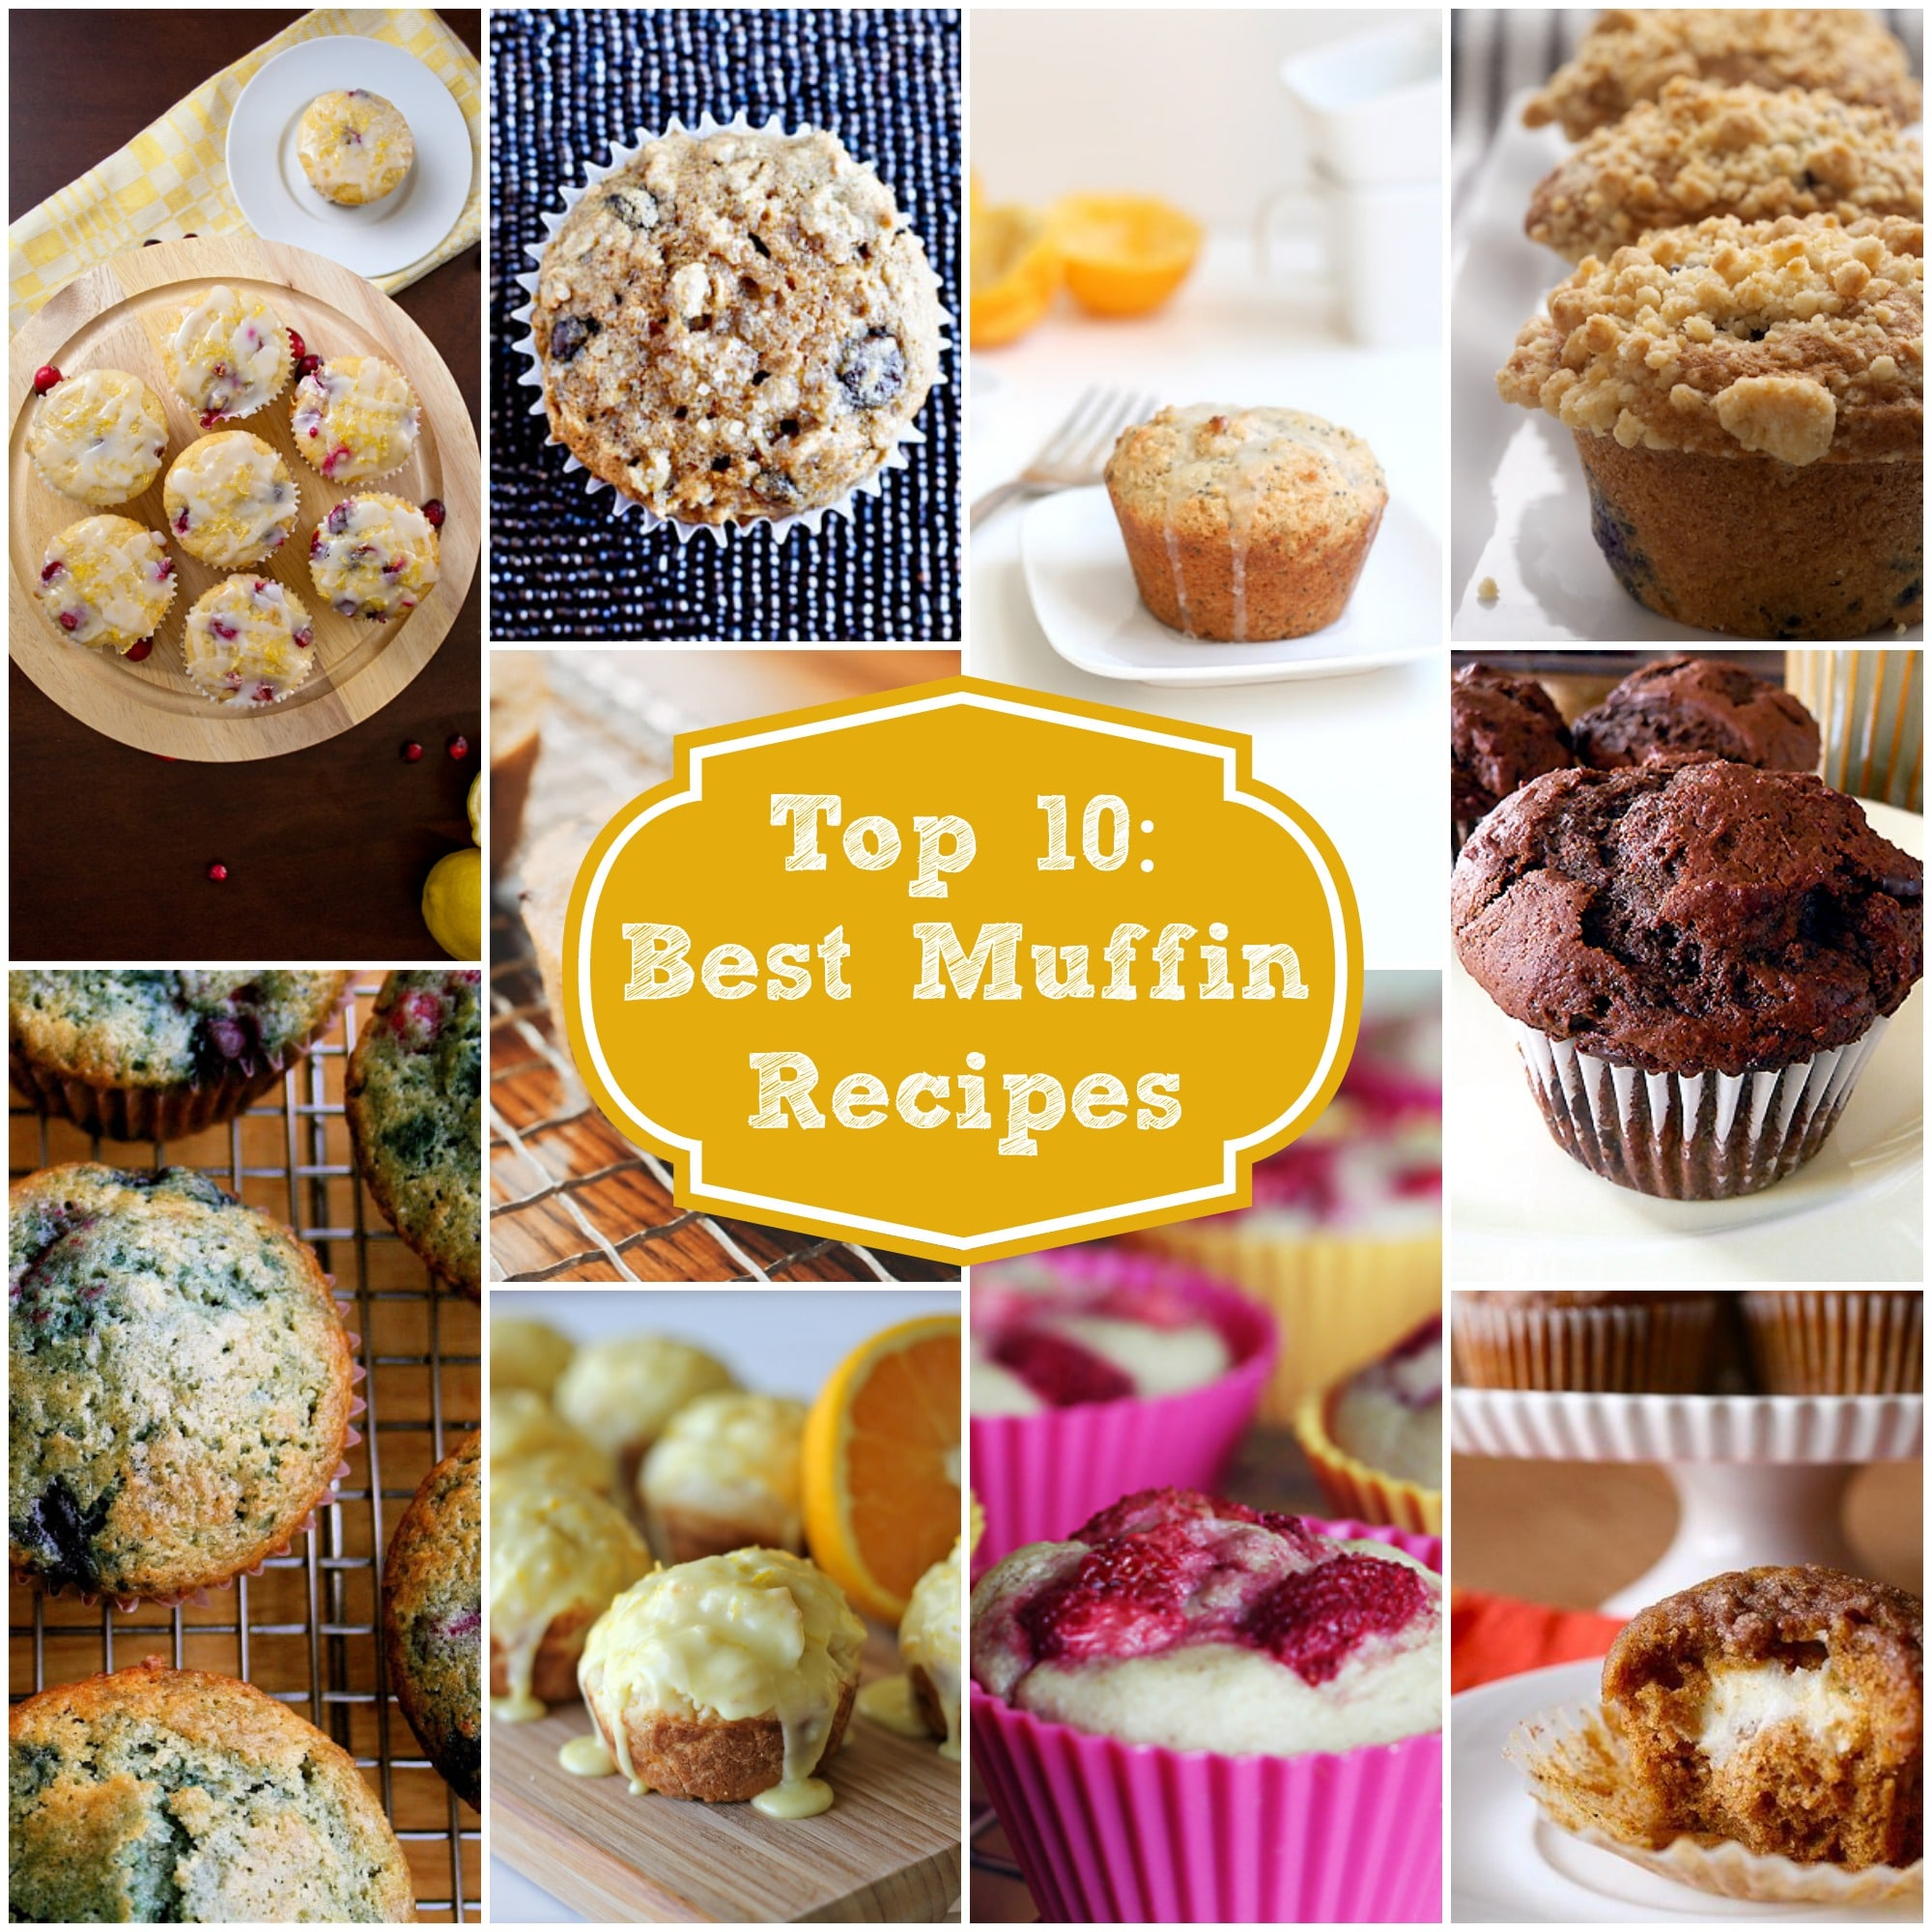 Muffin tops recipe